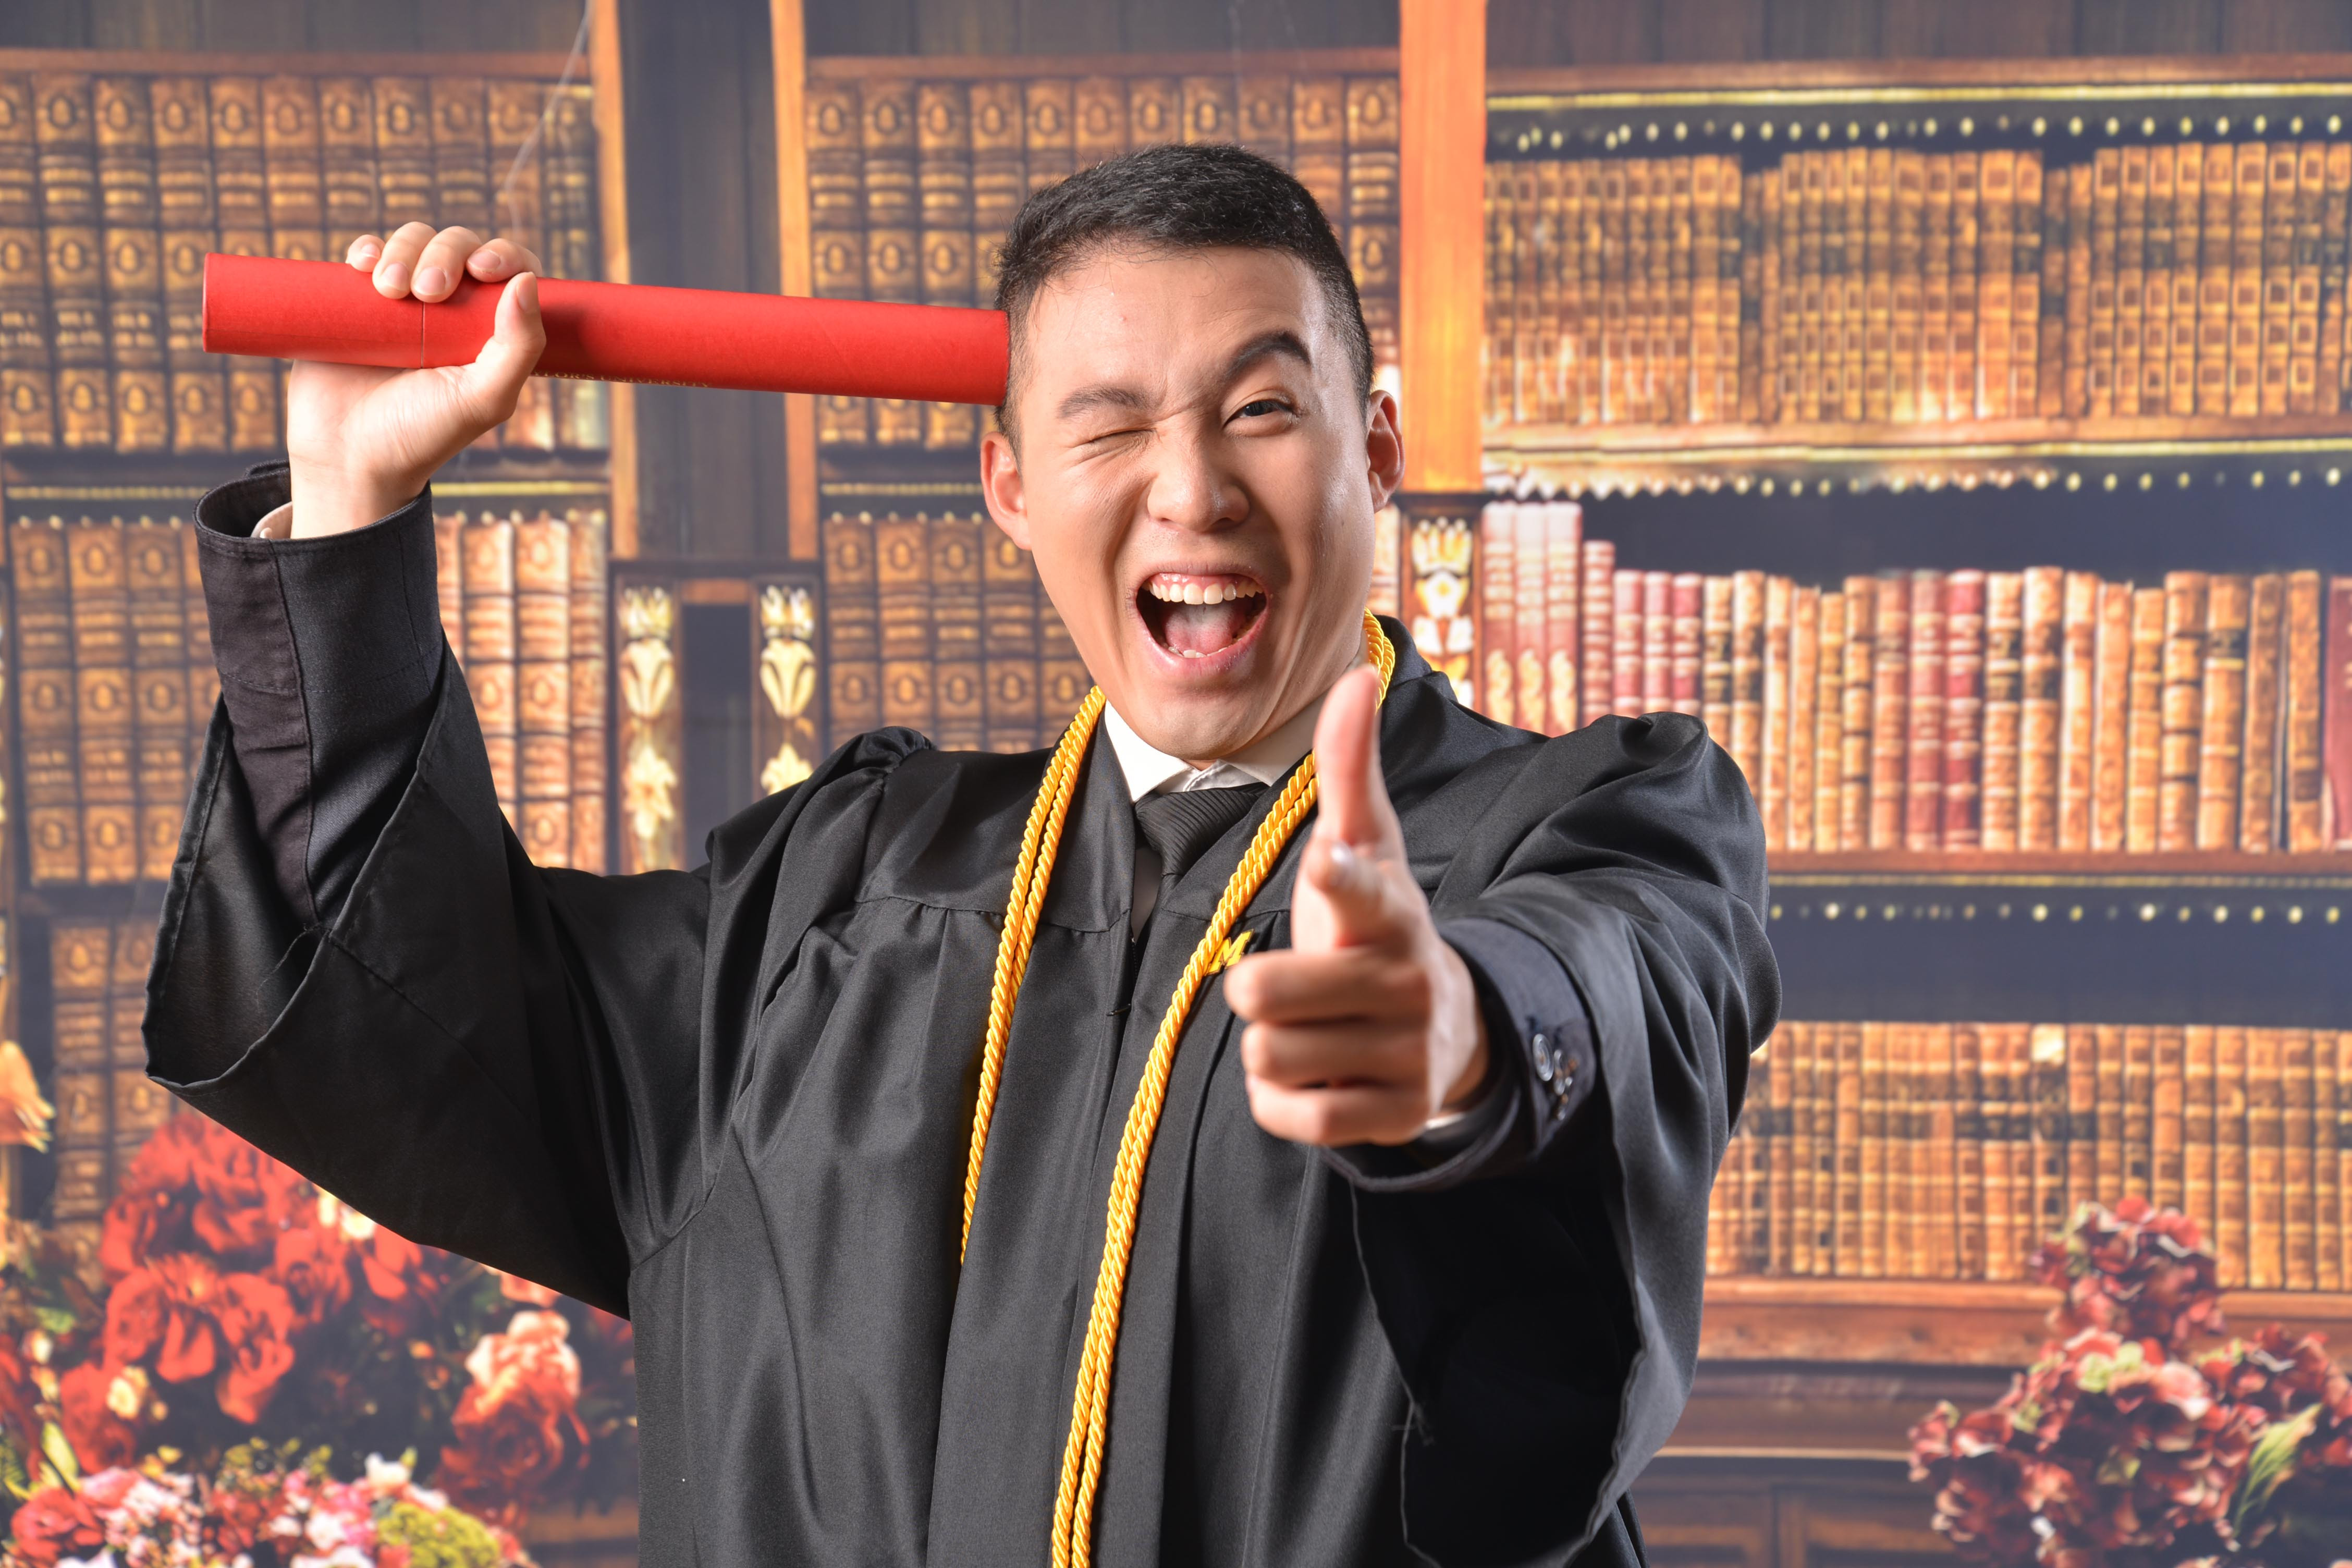 Personal and Graduation